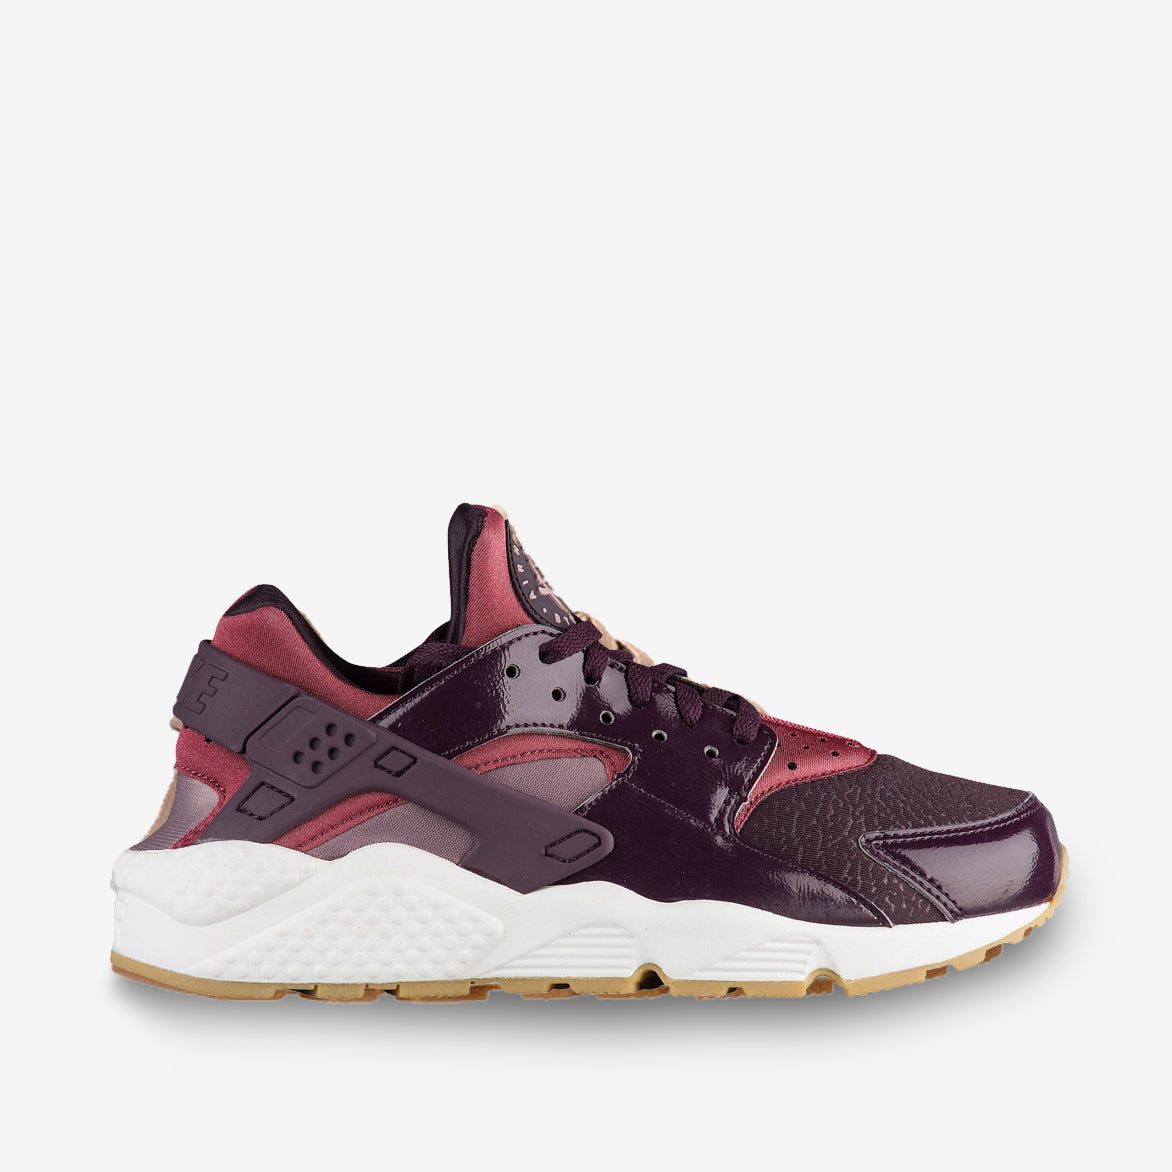 WMNS AIR HUARACHE RUN - PORT WINE